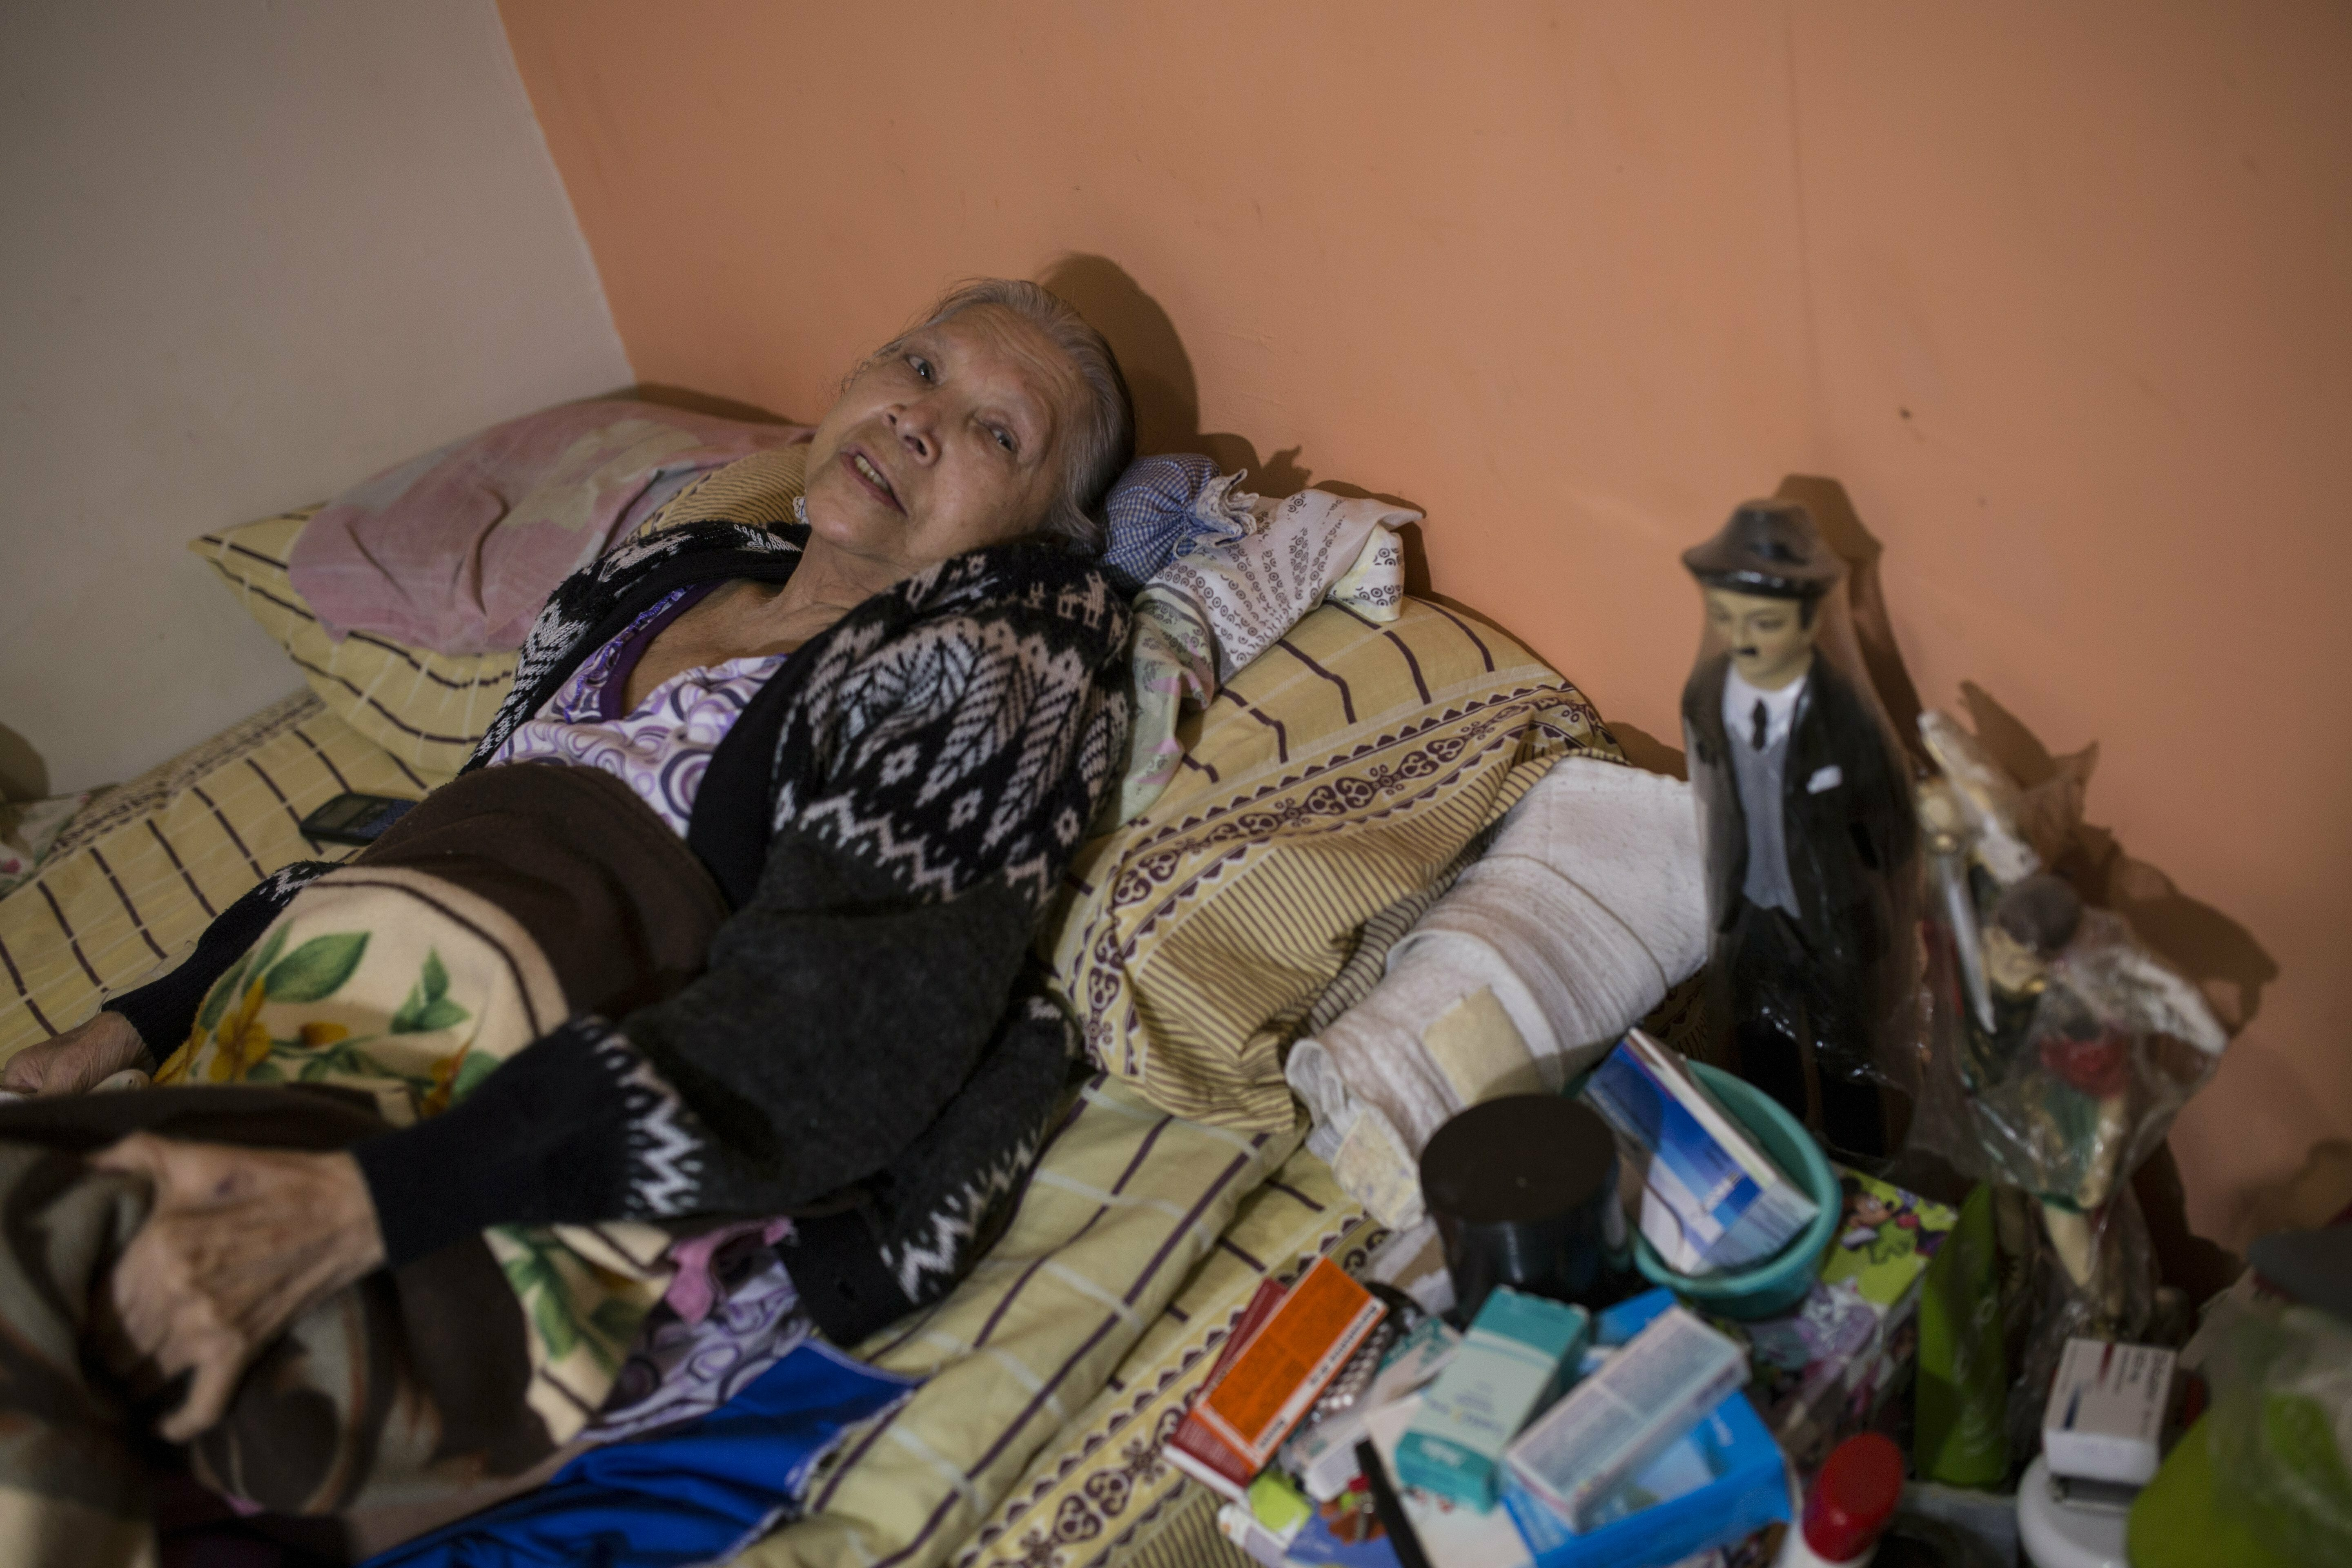 """In this Feb. 4, 2019 photo, diabetes patient Aminta Villamizar lies on her bed next to a statue of Dr. Jose Greogrio Hernandez, a 19th century Venezuelan doctor who treated the poor and is revered throughout the country as a saint, in Caracas, Venezuela. """"I was a person who worked my entire life, but this sickness destroyed me,"""" she said, complaining of joint pain and blurry vision. """"If we don't receive help, we'll have to resign ourselves to God's will."""" (AP Photo/Rodrigo Abd)"""